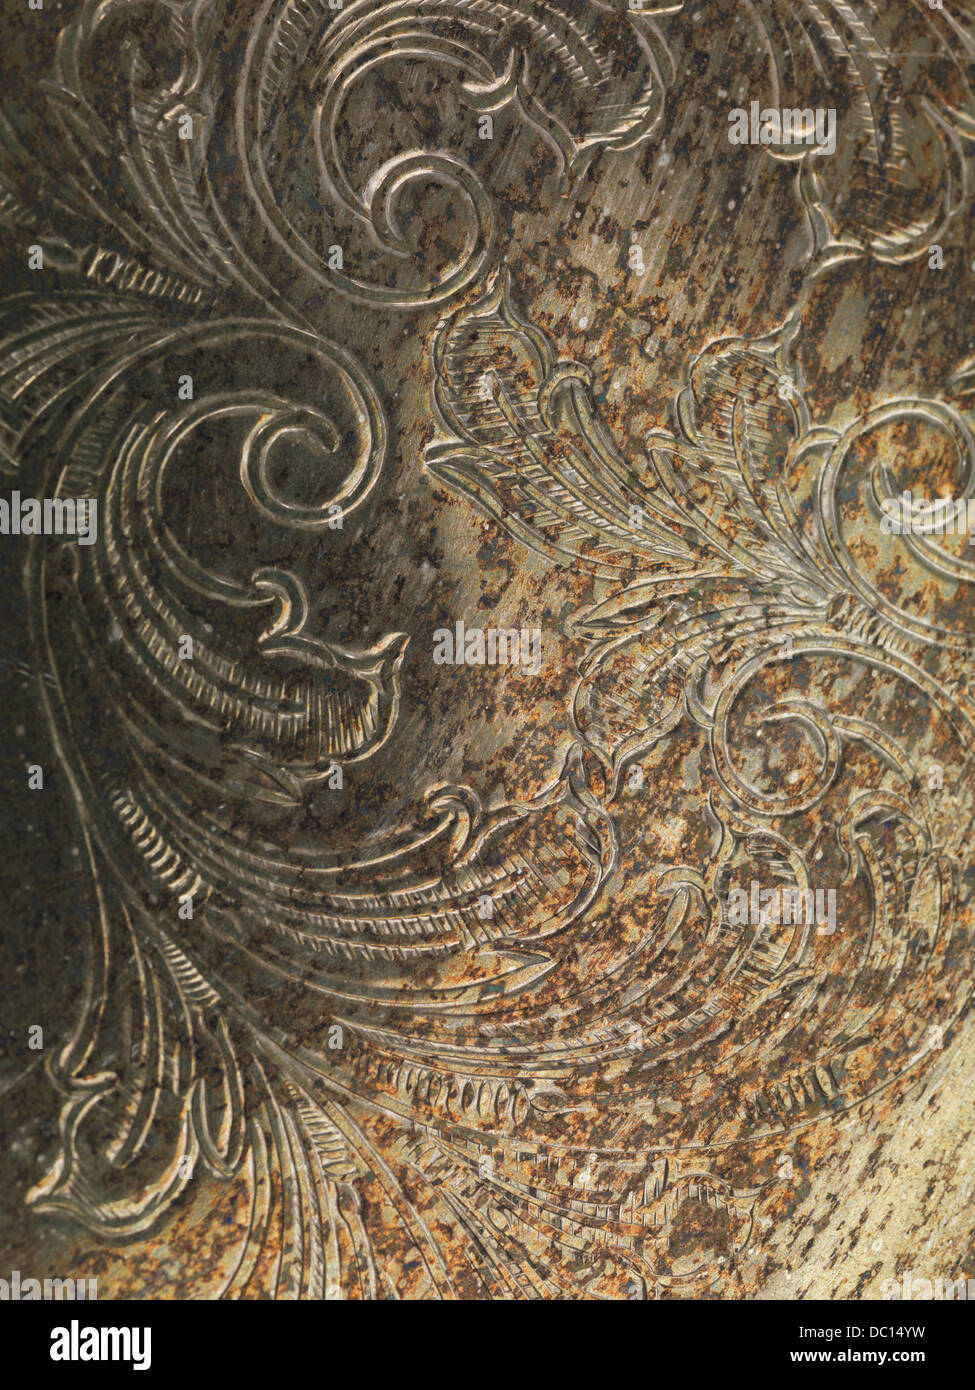 Oxidized grungy rusted metal texture background with ornament - Stock Image